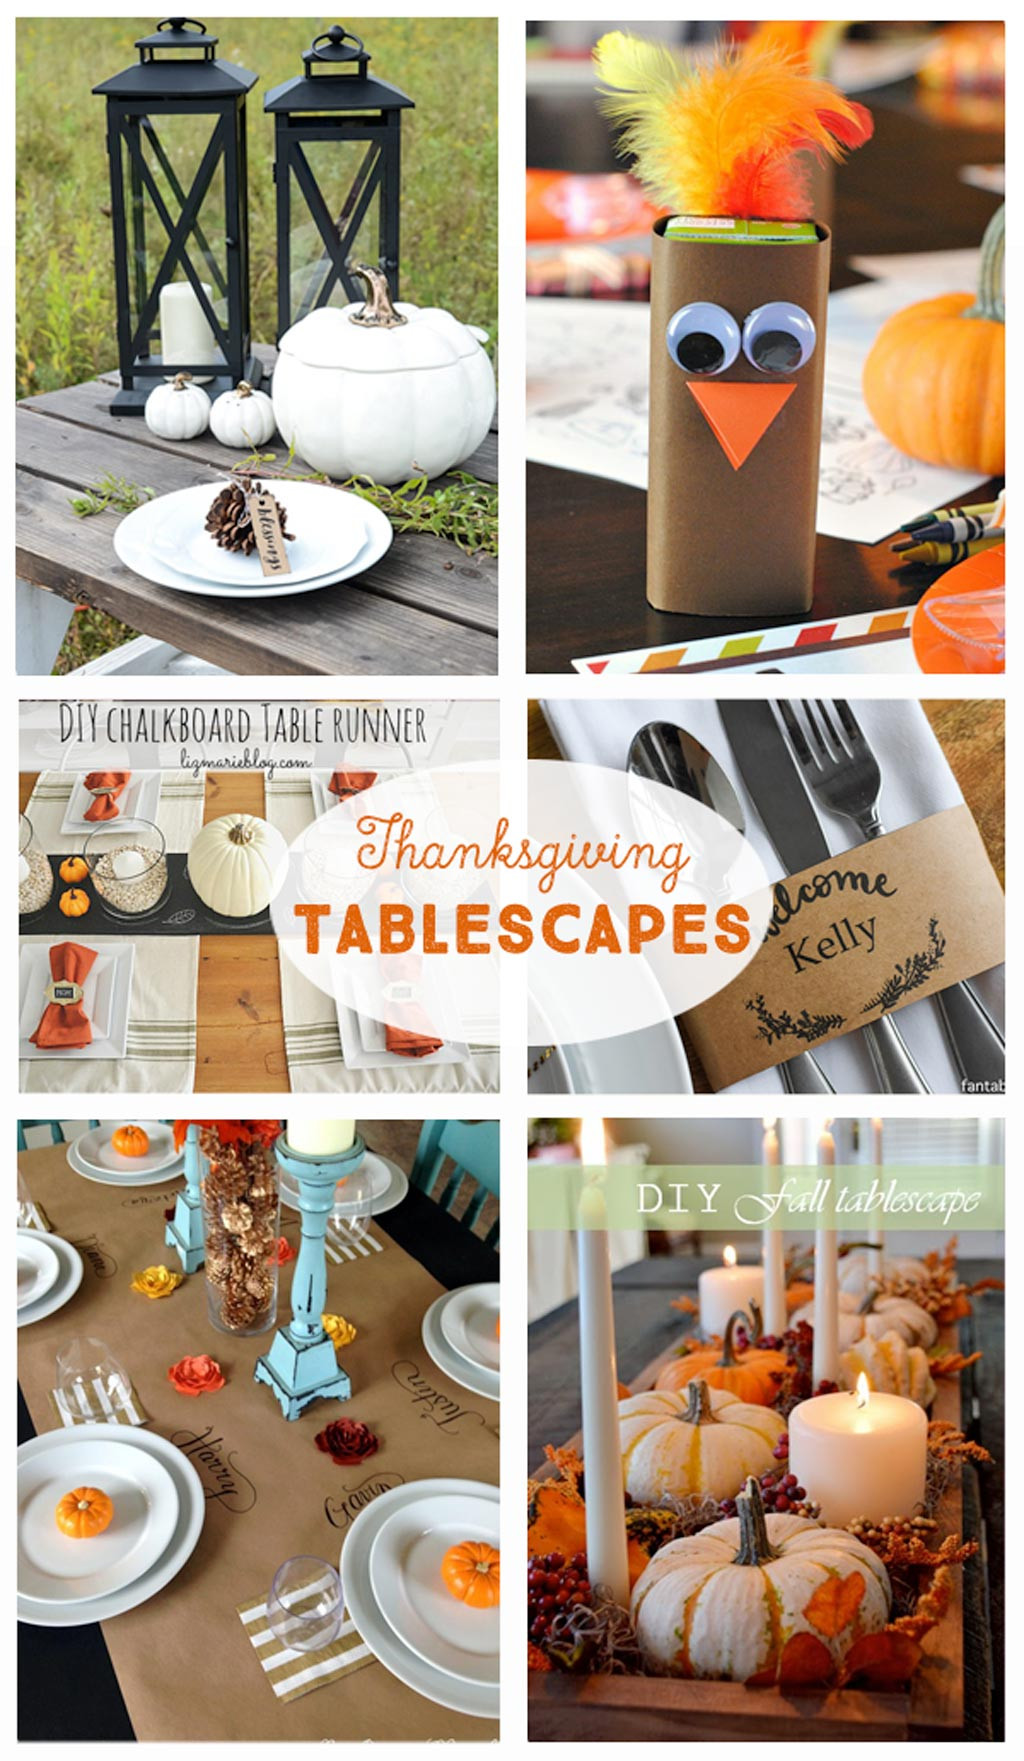 Best ideas about DIY Thanksgiving Table Decorations . Save or Pin DIY Thanksgiving Tablescapes The Crafting Chicks Now.